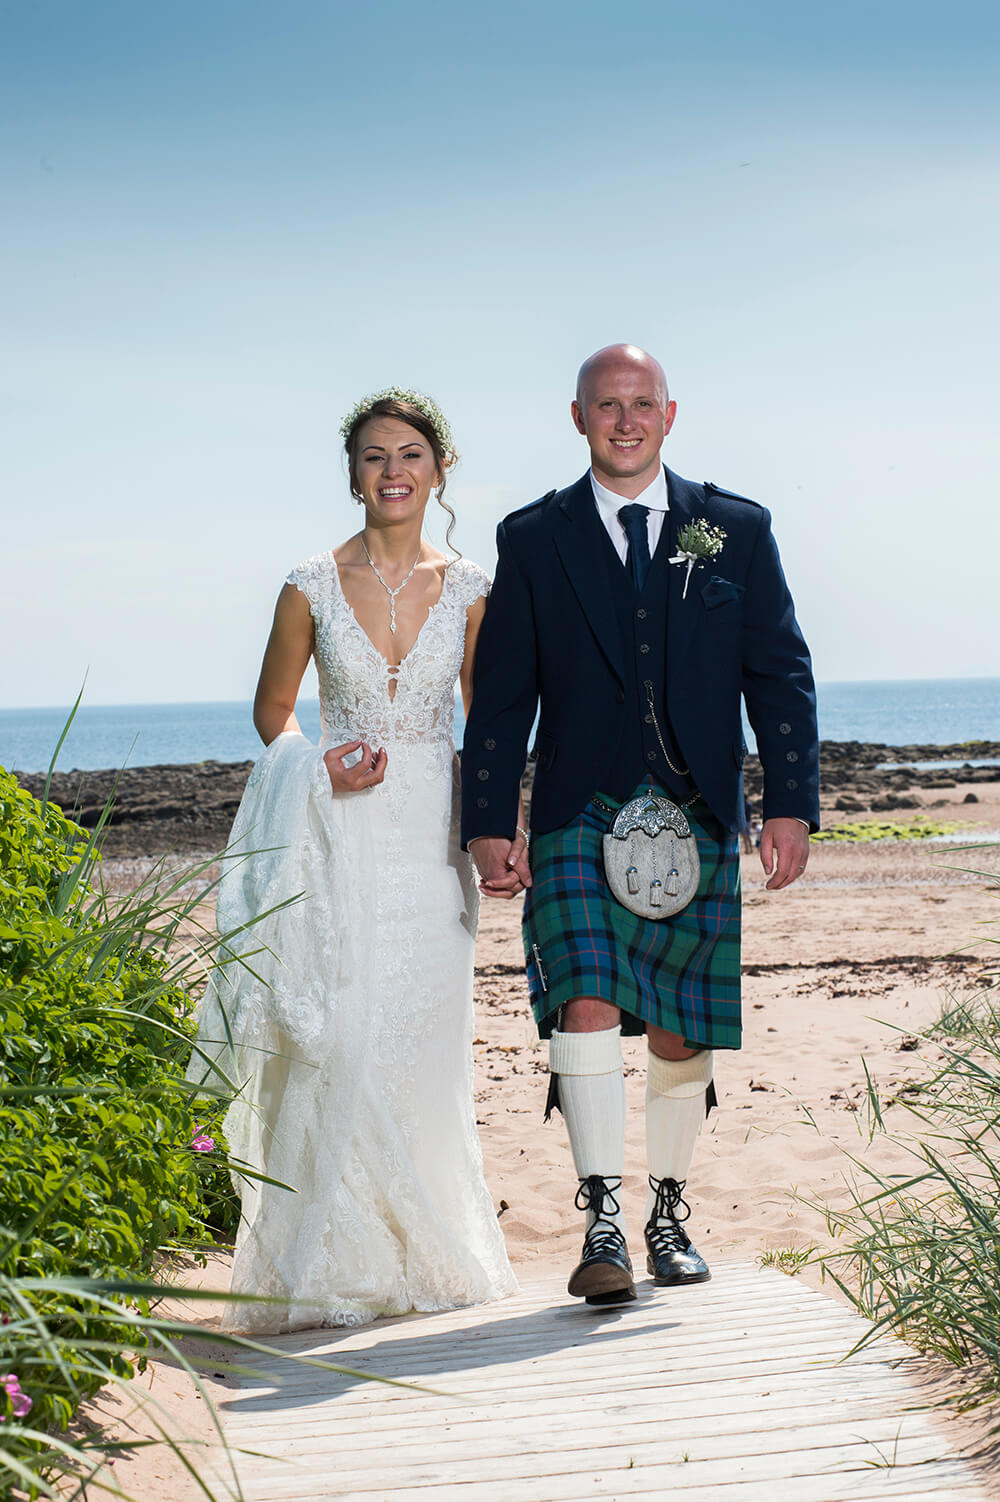 The Waterside hotel is very close to the beach which is perfect for fun wedding photographs.